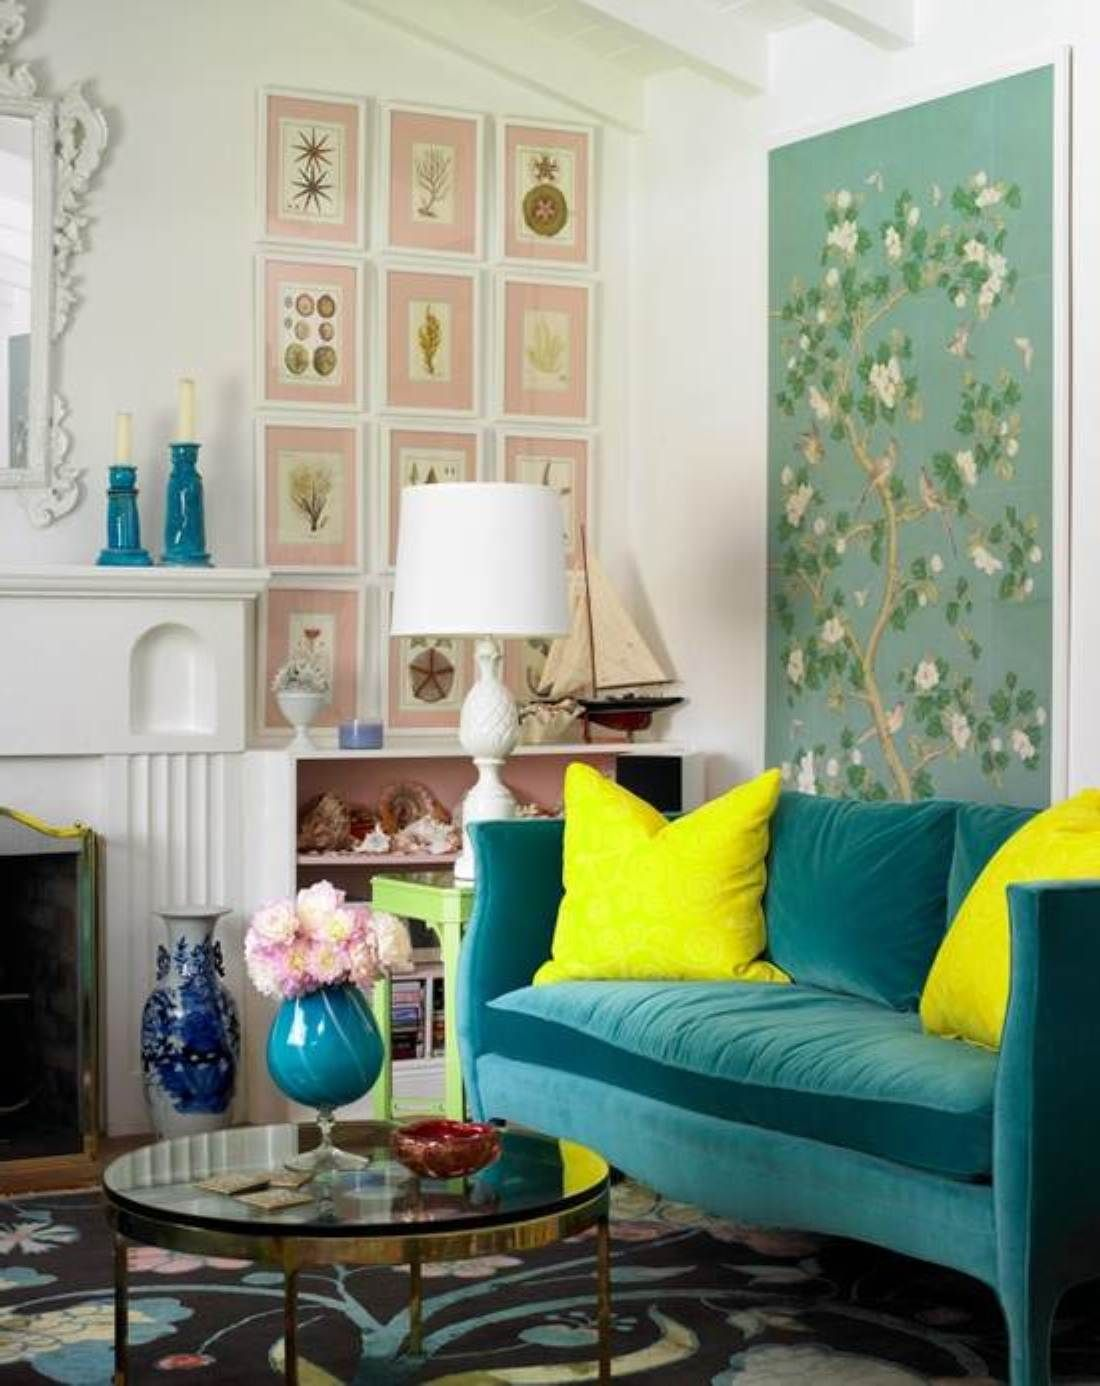 Small Great Room Designs: Great Living Room Ideas For Small Spaces : Decorating